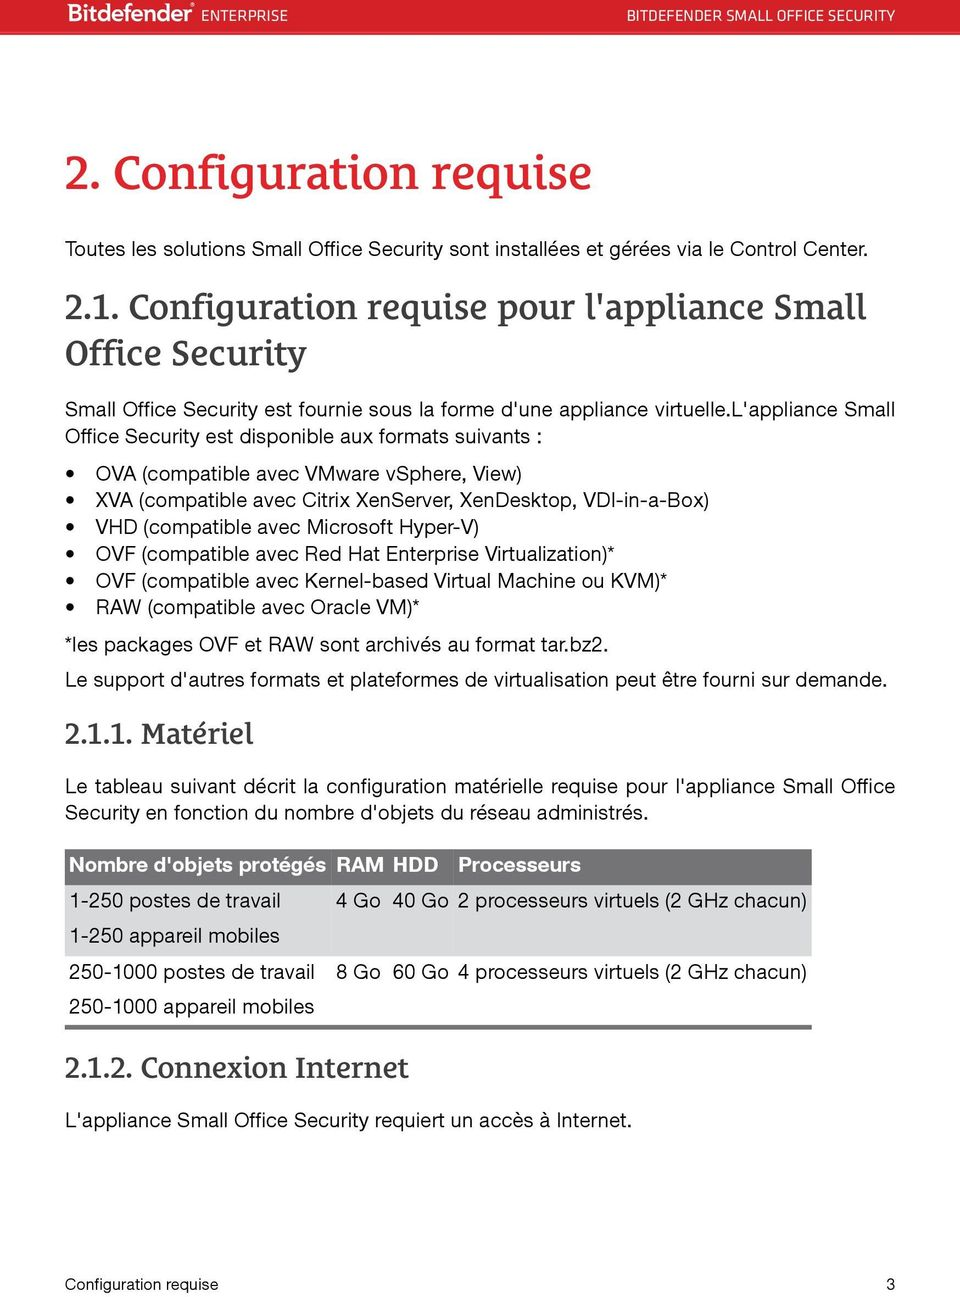 l'appliance Small Office Security est disponible aux formats suivants : OVA (compatible avec VMware vsphere, View) XVA (compatible avec Citrix XenServer, XenDesktop, VDI-in-a-Box) VHD (compatible